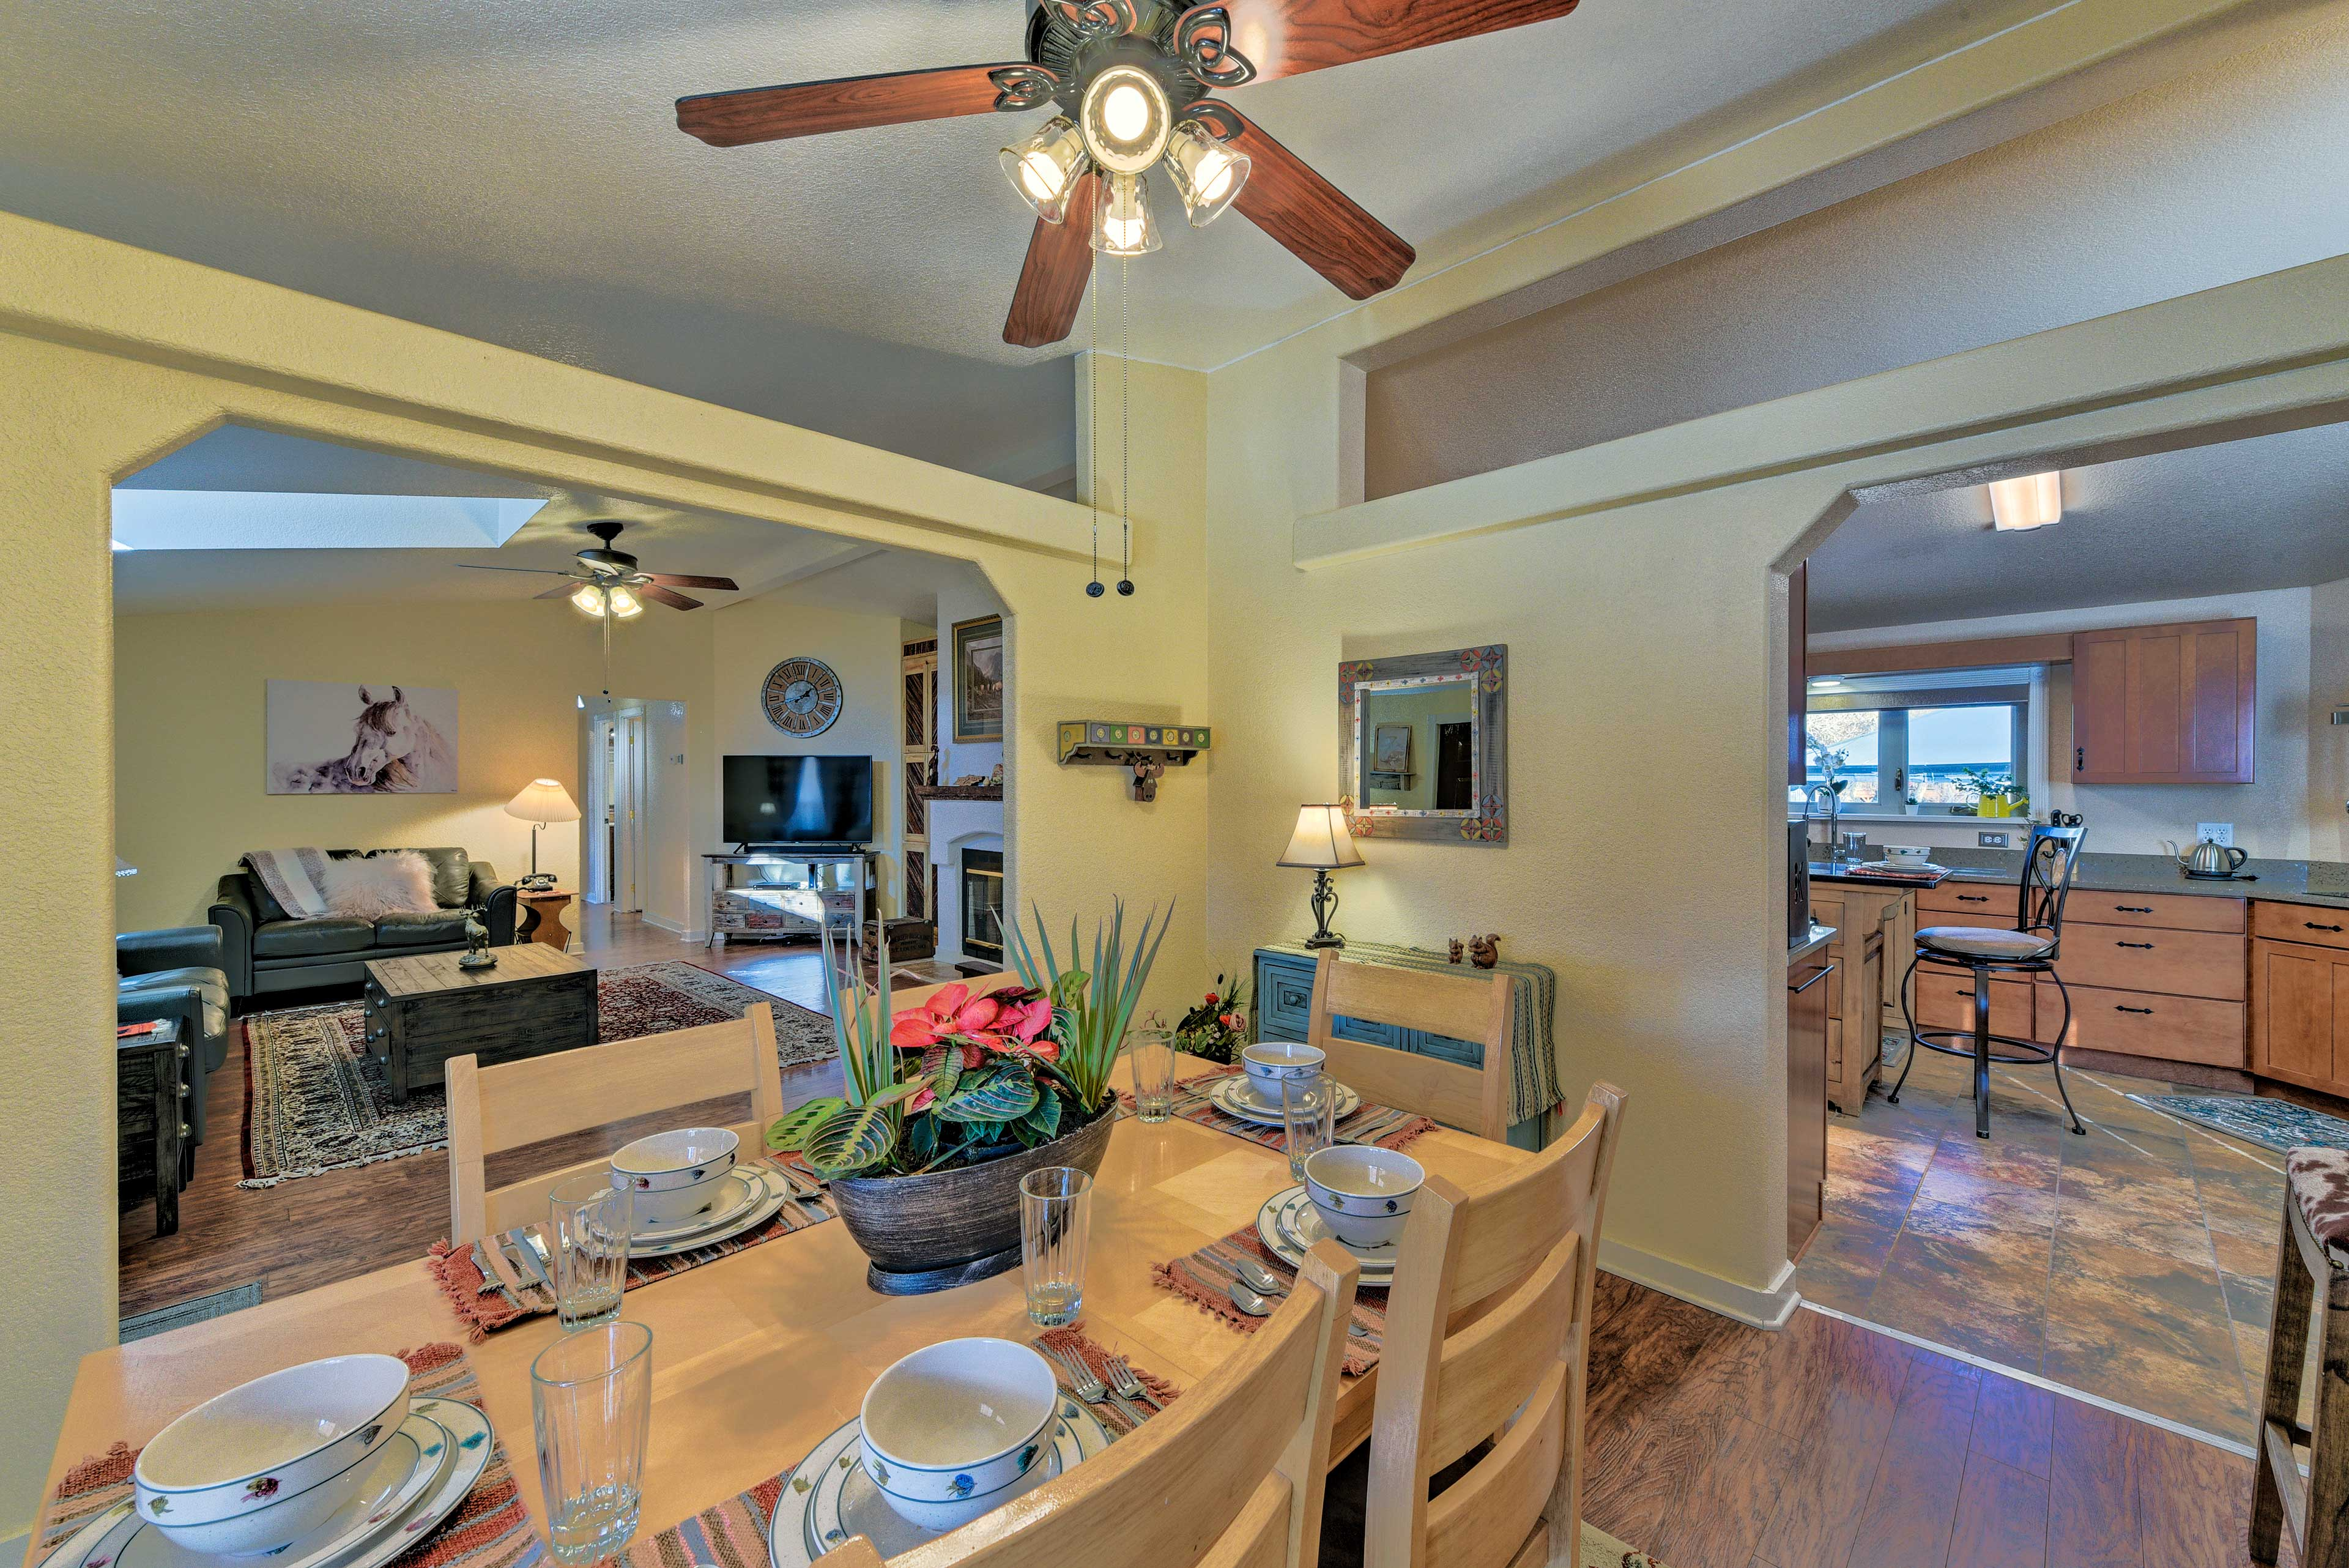 The open dining room is adjacent to the living area & kitchen.